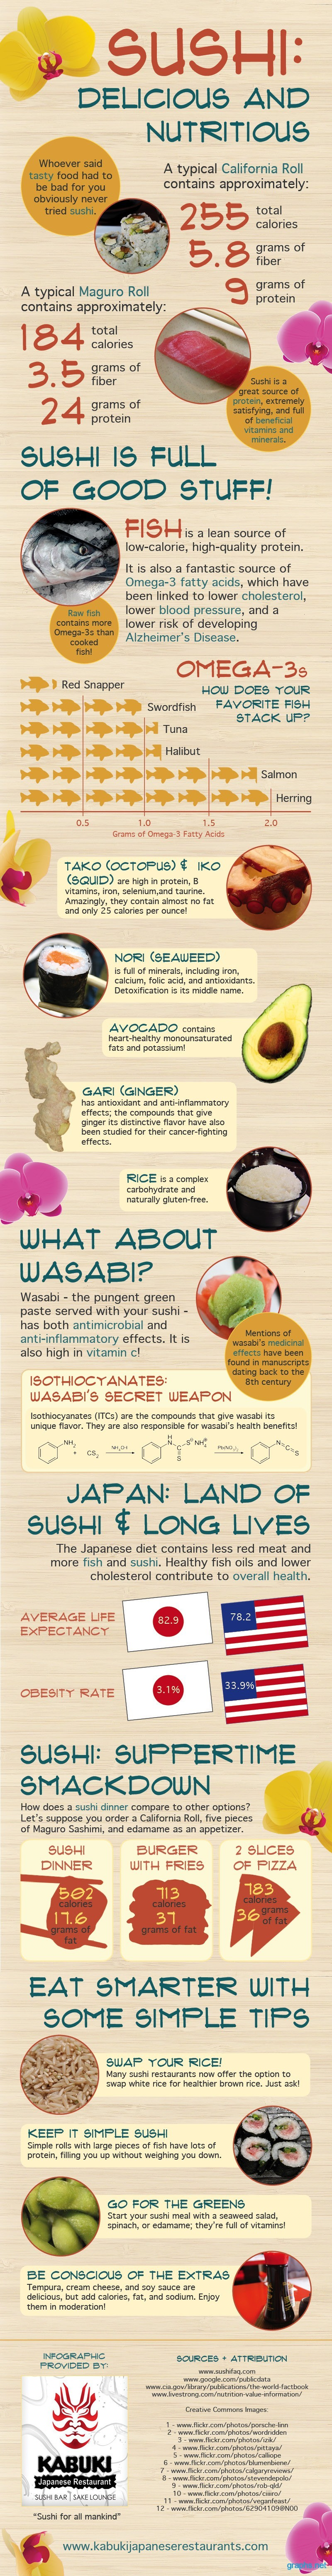 sushi delicious and nutritious facts